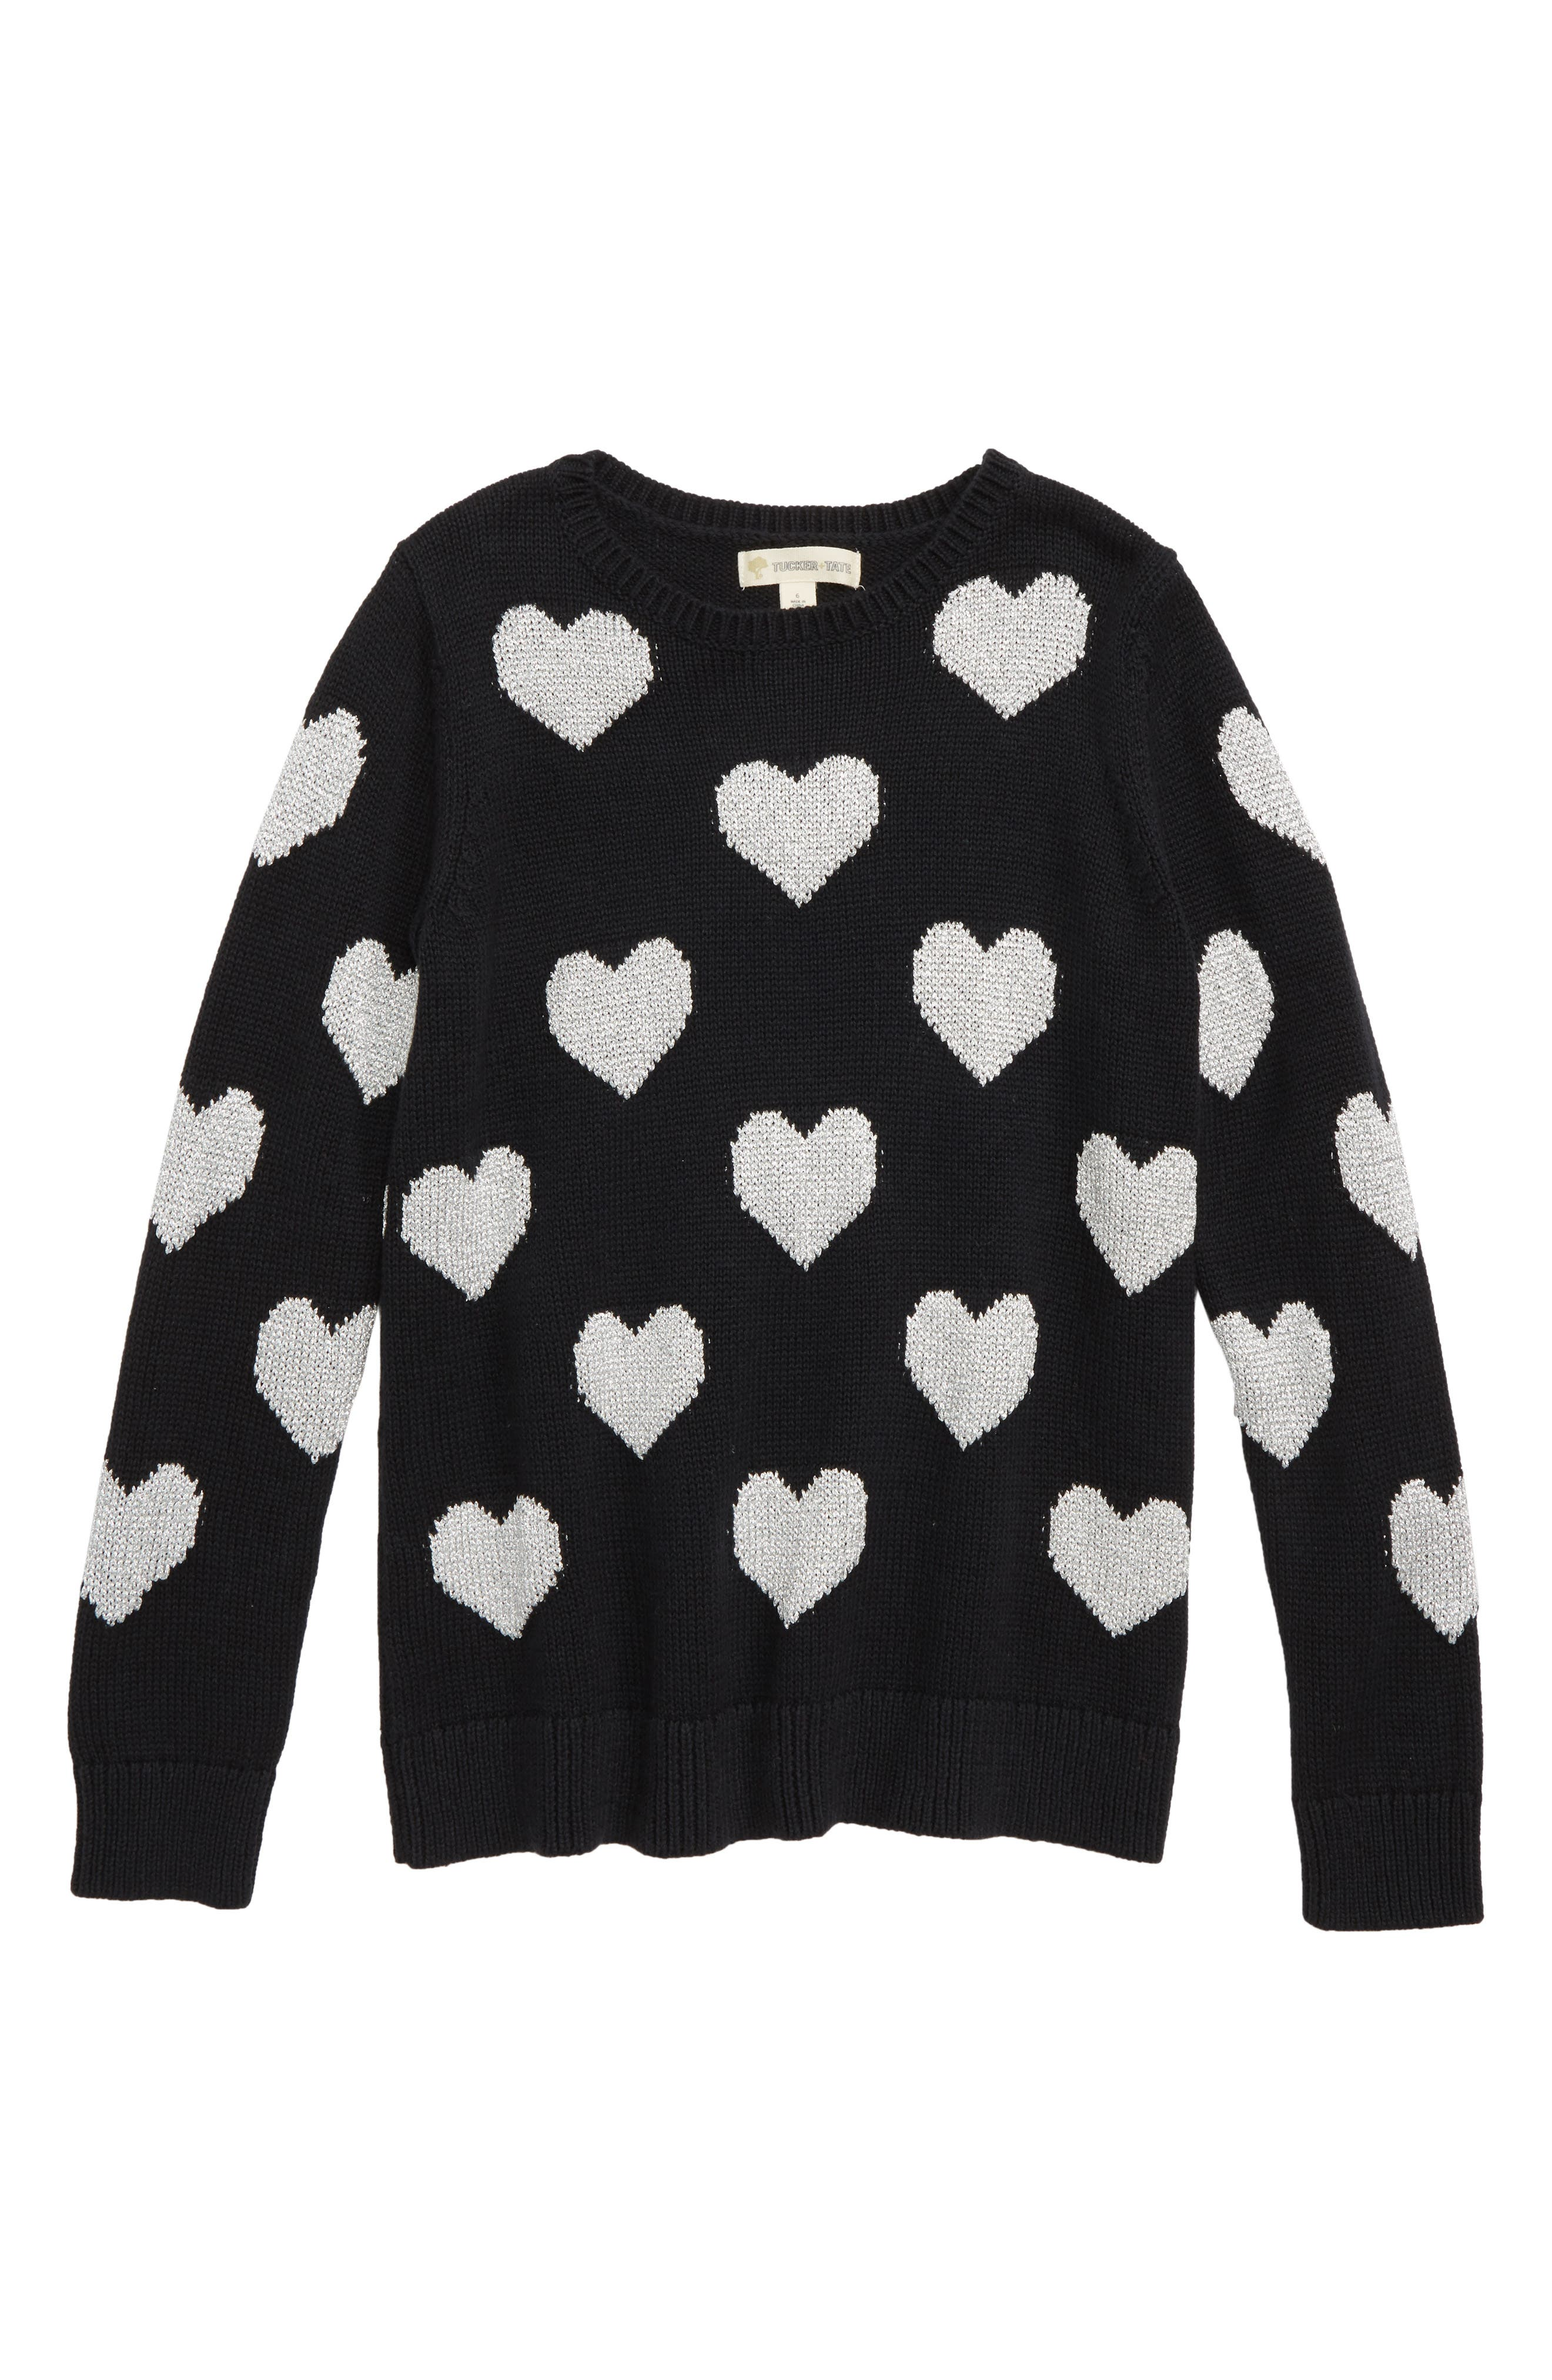 Metallic Heart Sweater,                             Main thumbnail 1, color,                             BLACK SPARKLE HEARTS